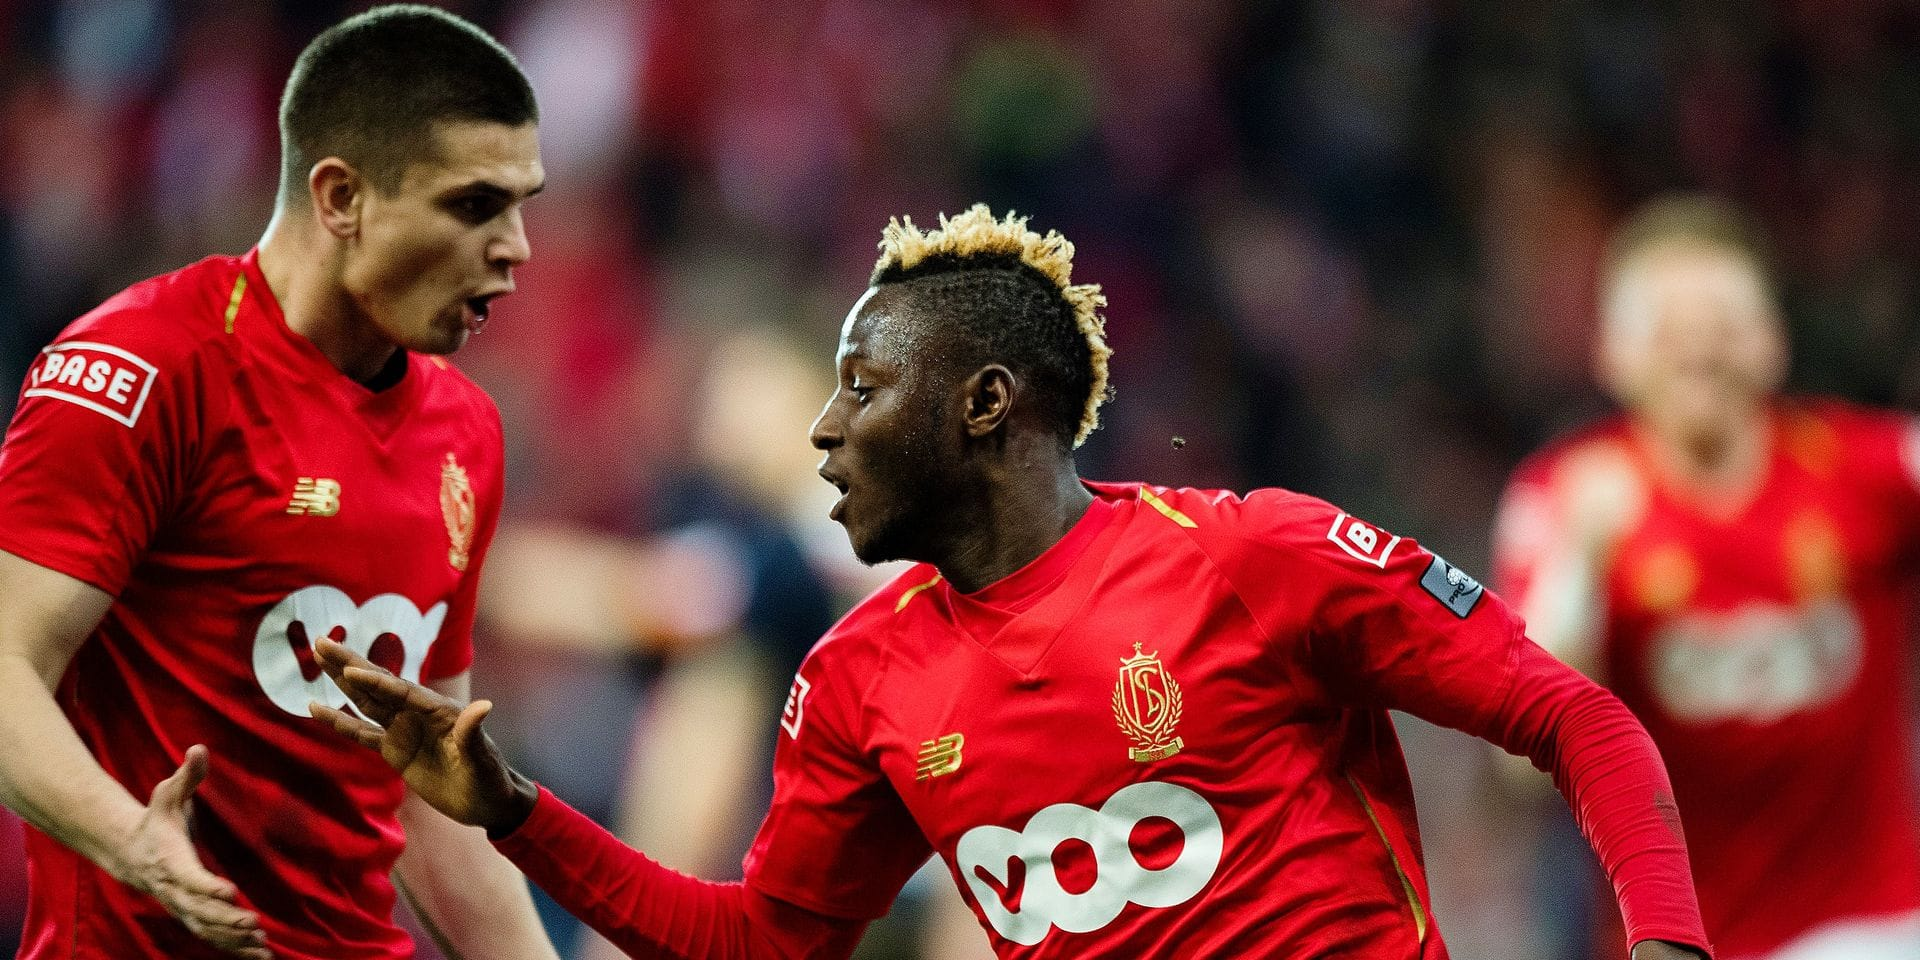 Standard's Razvan Marin and Standard's Moussa Djenepo celebrate after scoring during a soccer game between Standard de Liege and Royal Antwerp FC, Friday 29 March 2019 in Liege, on day 1 (out of 10) of the Play-off 1 of the 'Jupiler Pro League' Belgian soccer championship. BELGA PHOTO JASPER JACOBS